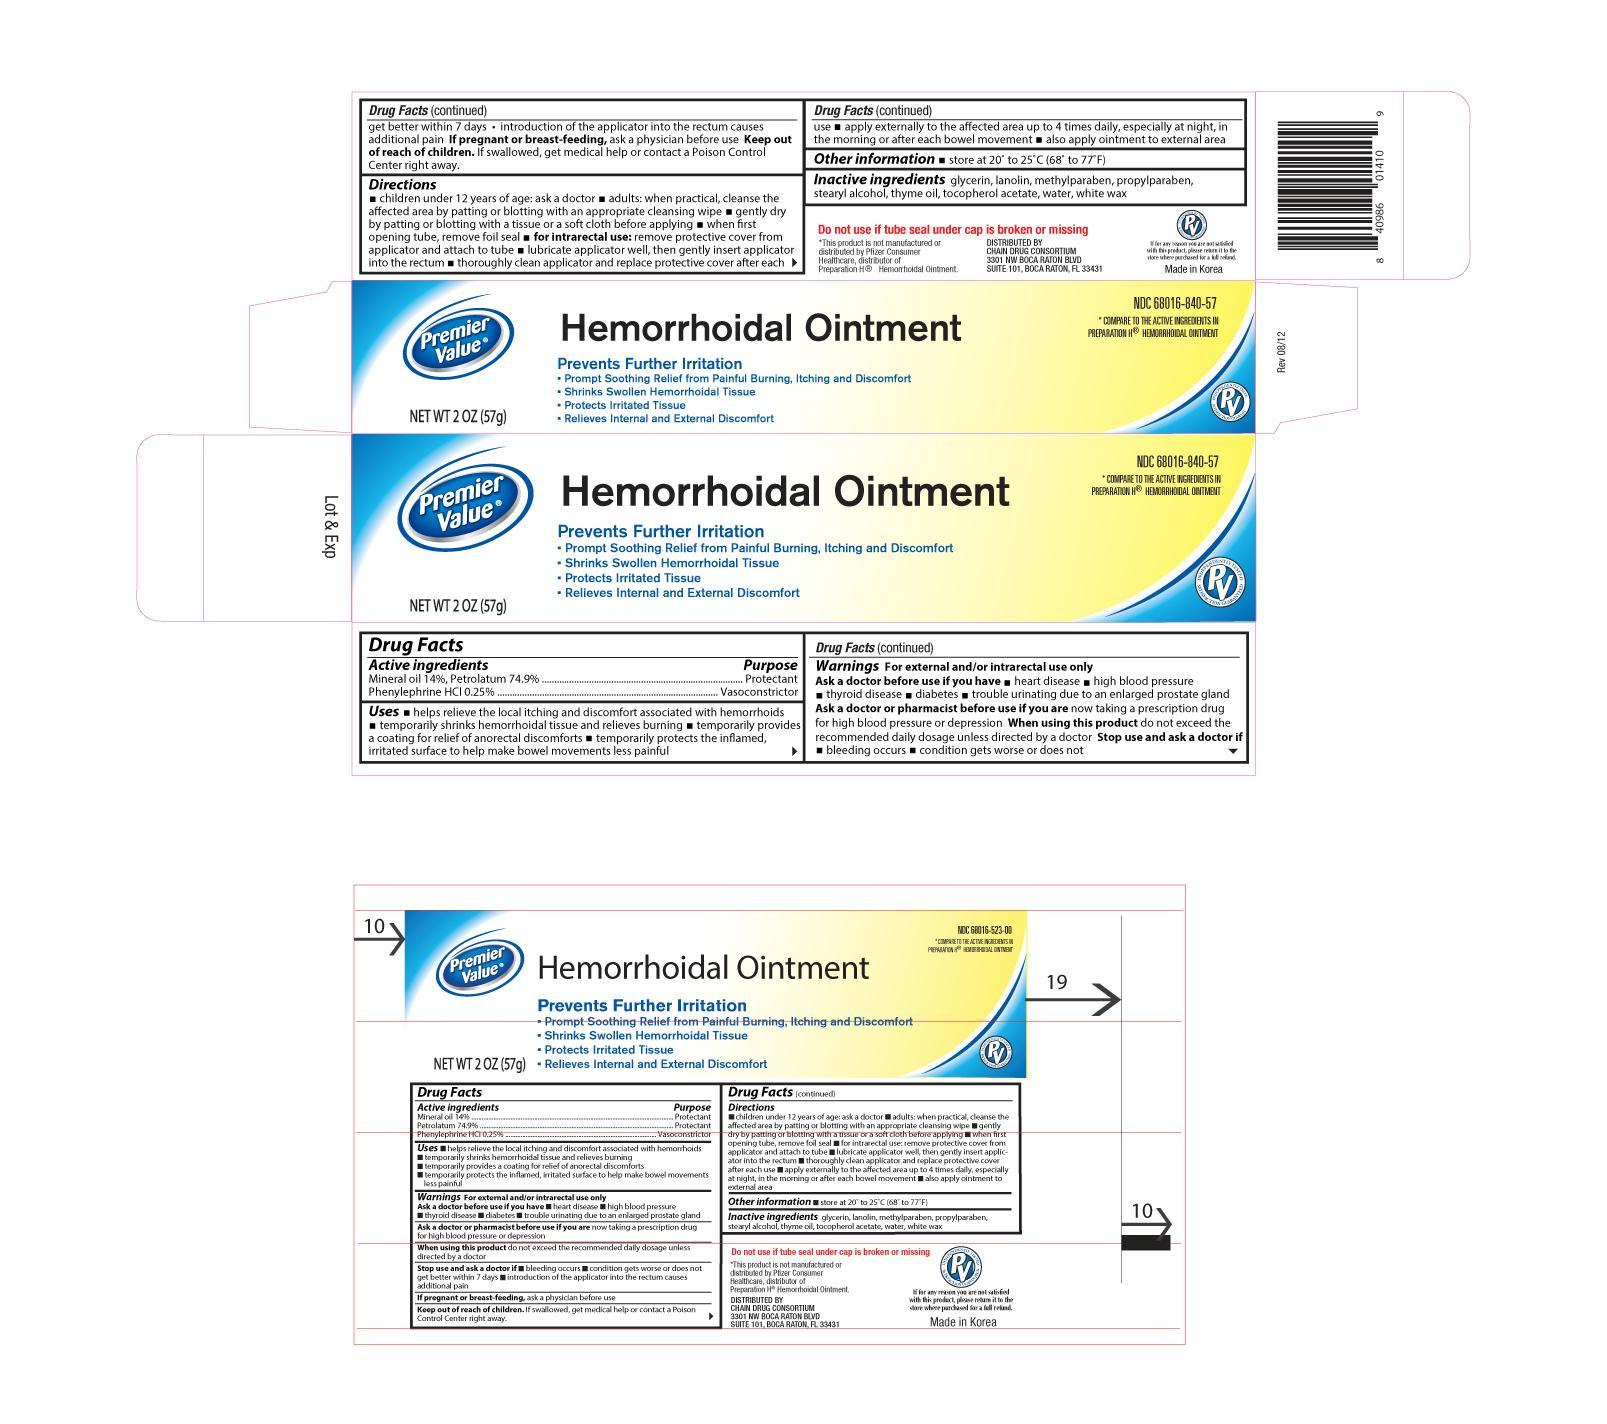 Premier Value Hemorrhoidal (Mineral Oil, Petrolatum, And Phenylephrine Hydrochloride) Ointment [Chain Drug Consortium, Llc]